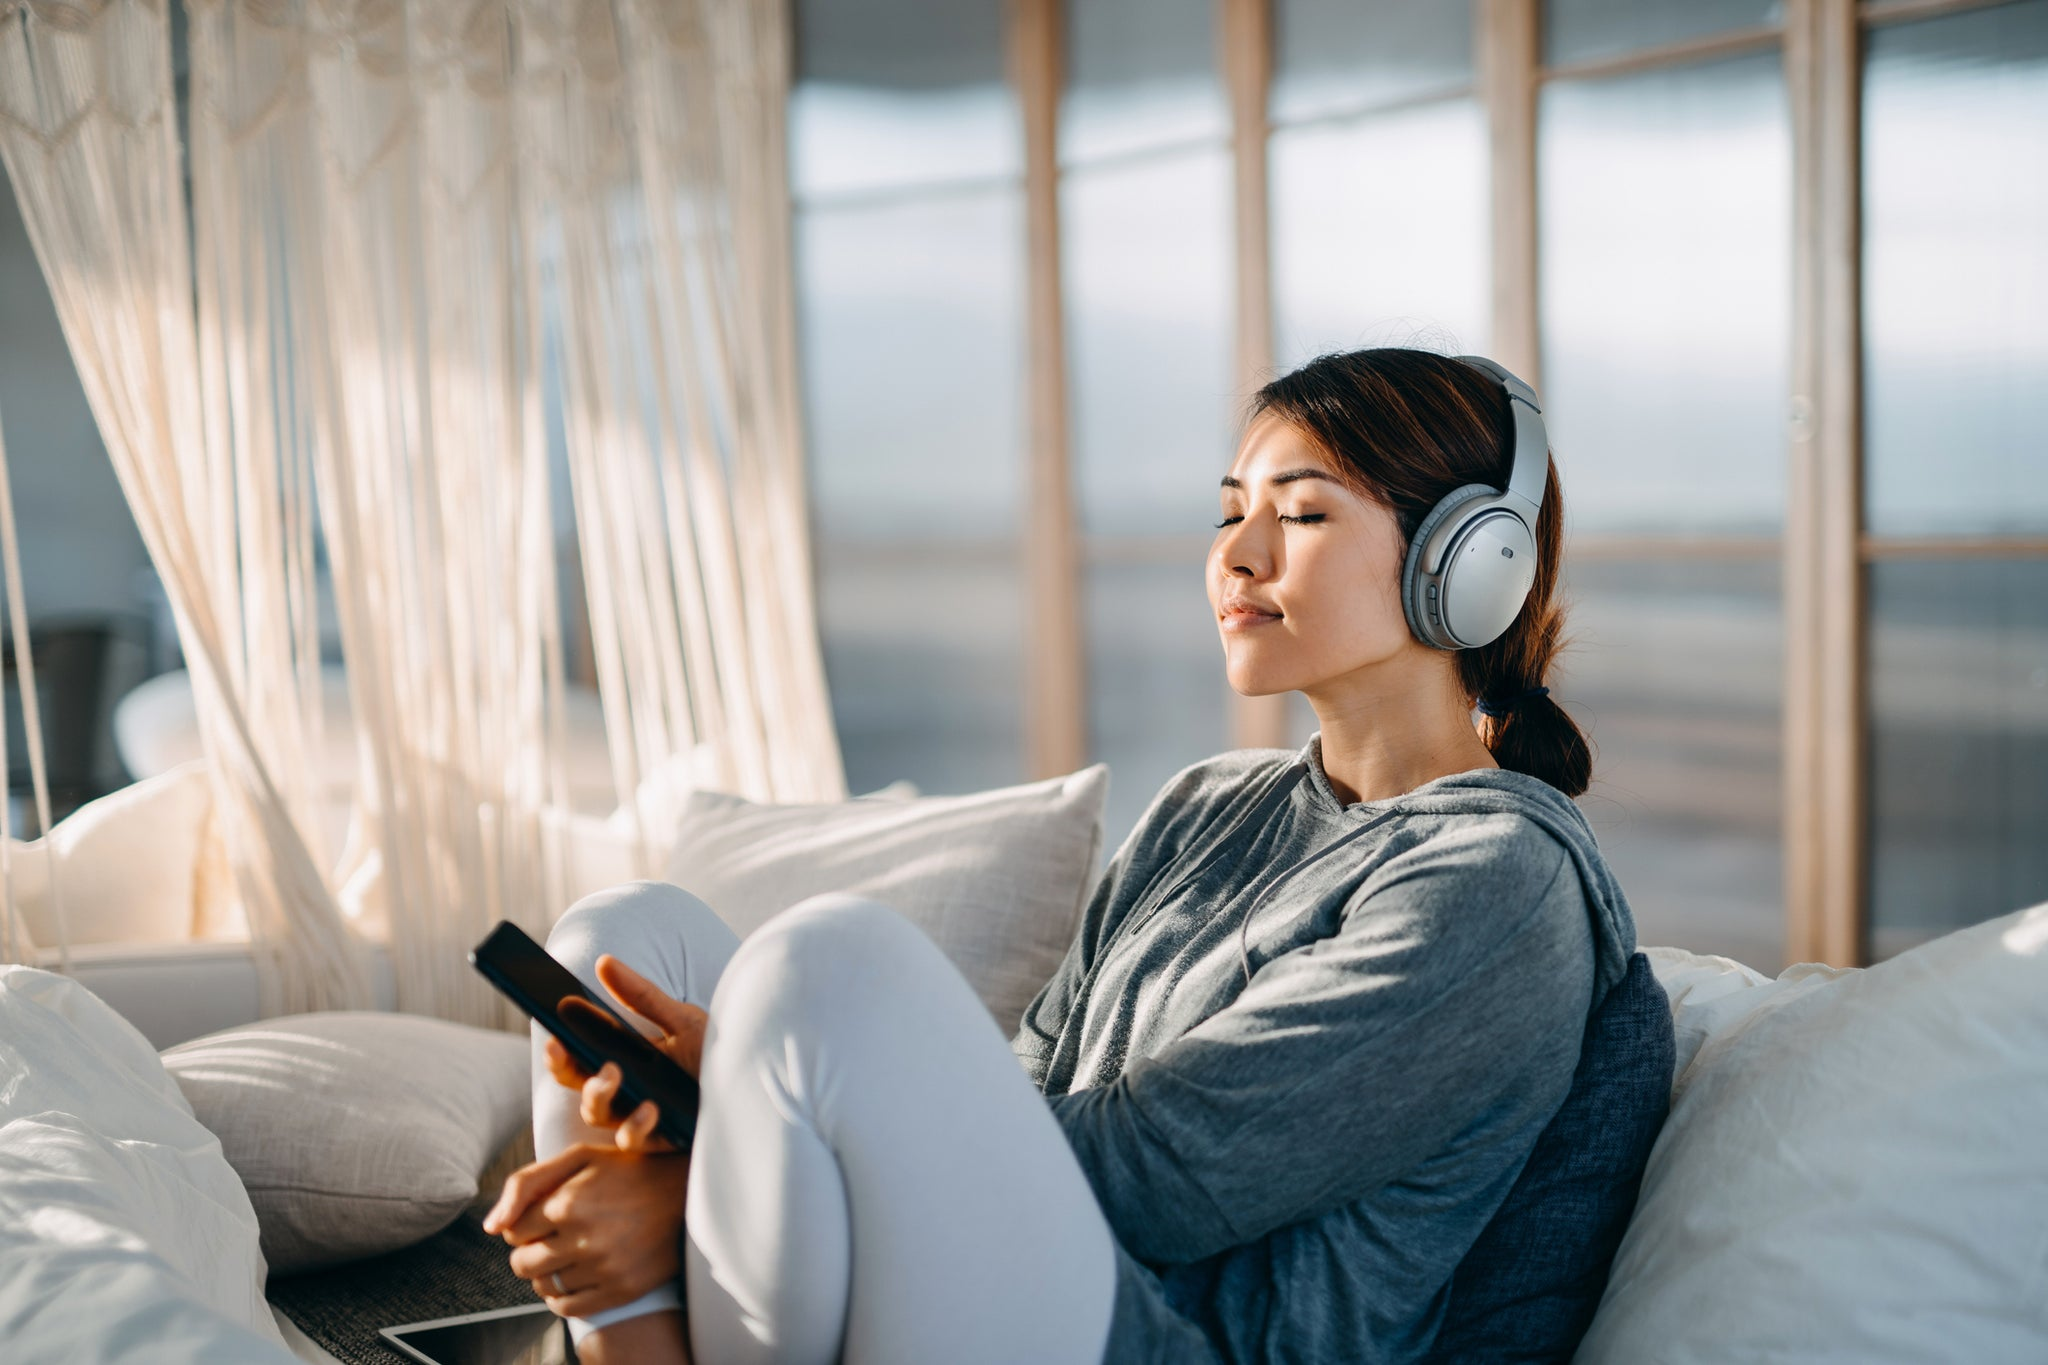 Woman sitting comfortably focusing on music or sounds in headphones